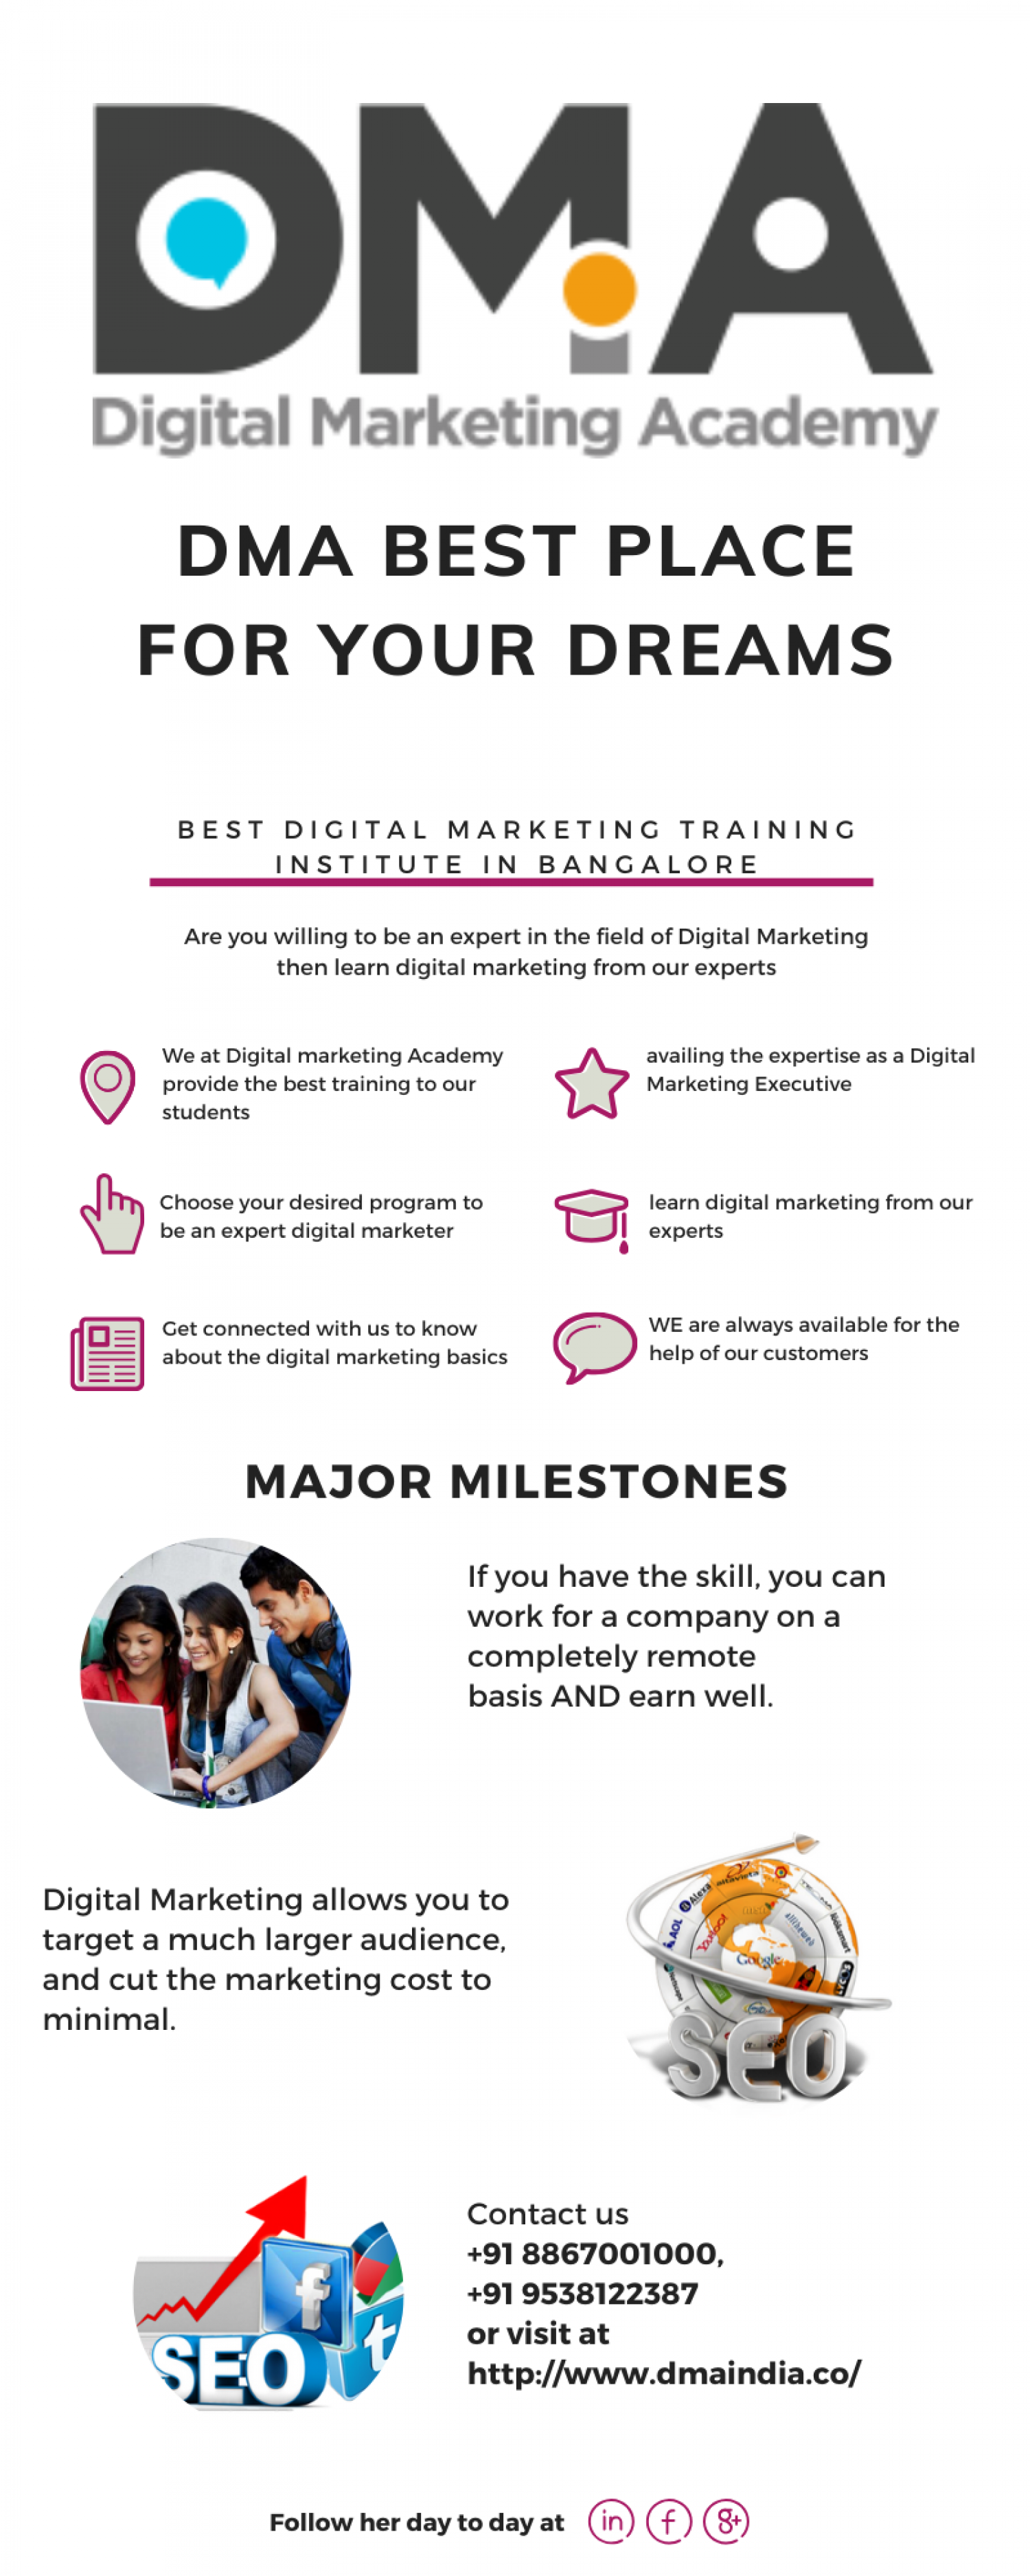 Best Digital Marketing Training Institute in Bangalore